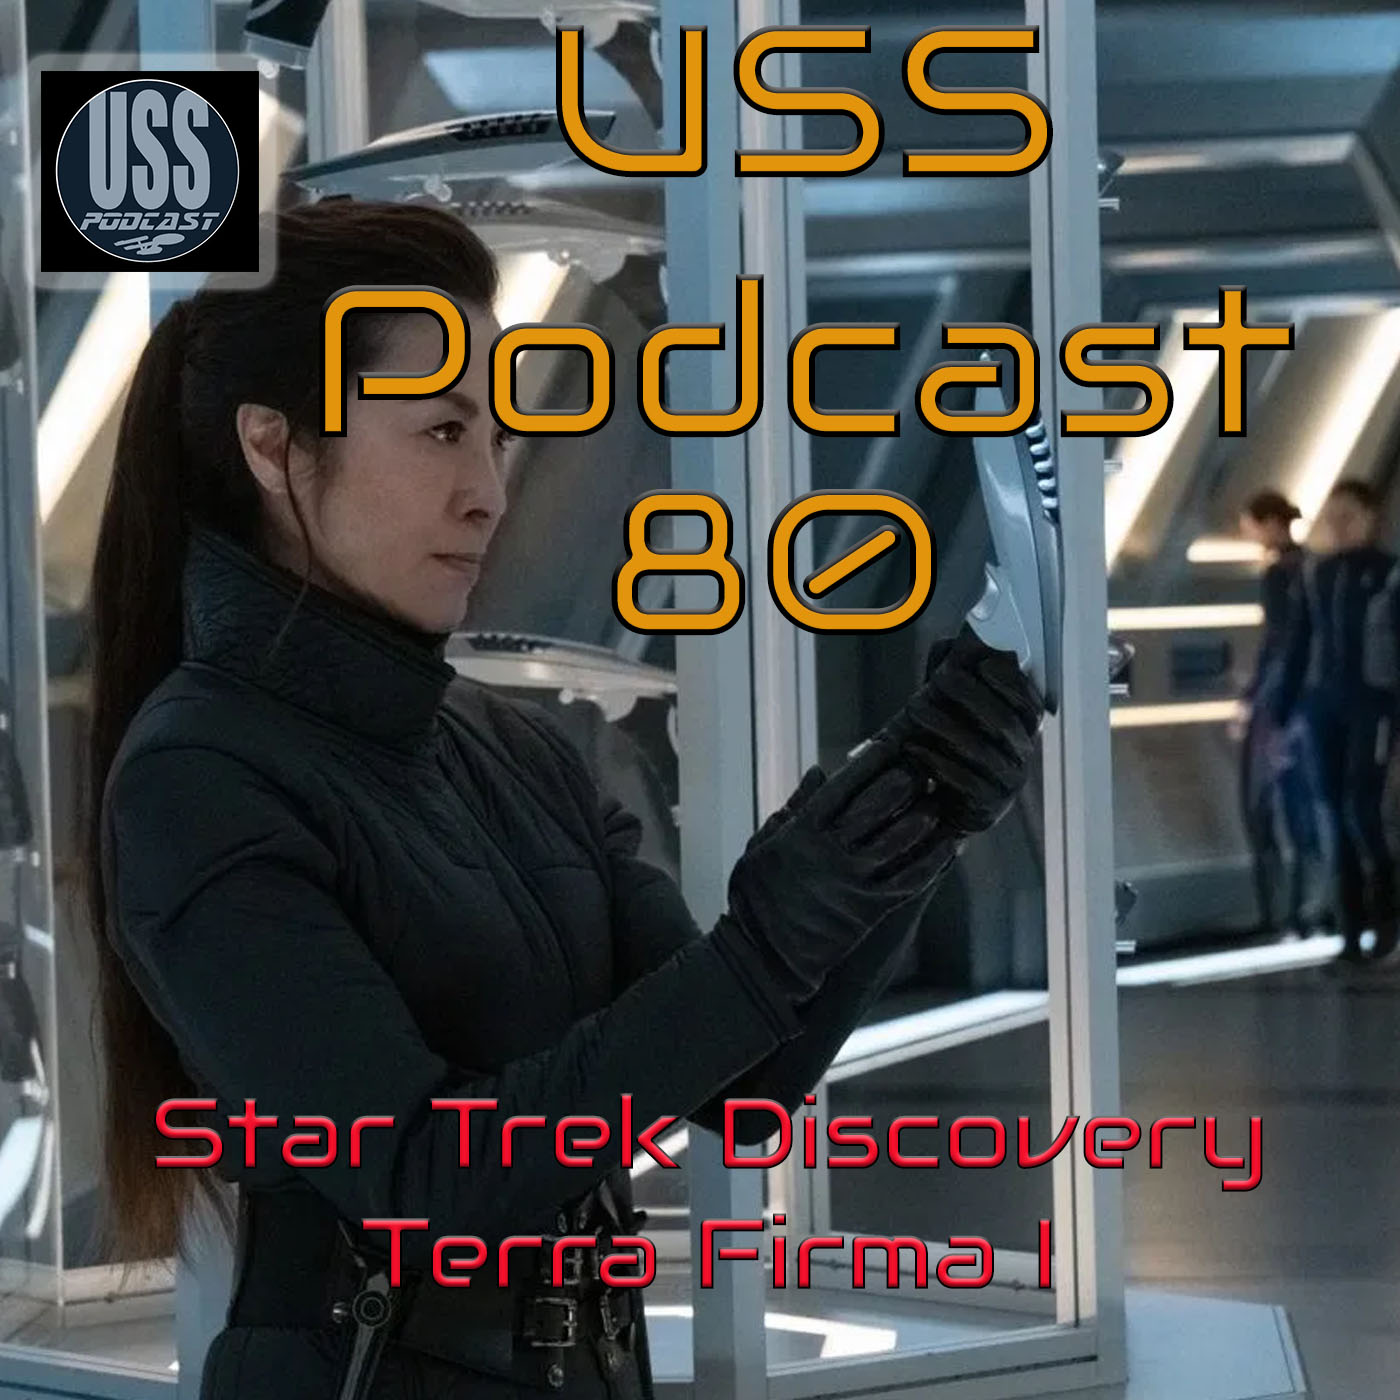 Star Trek Discovery 3×09 USS Podcast 80